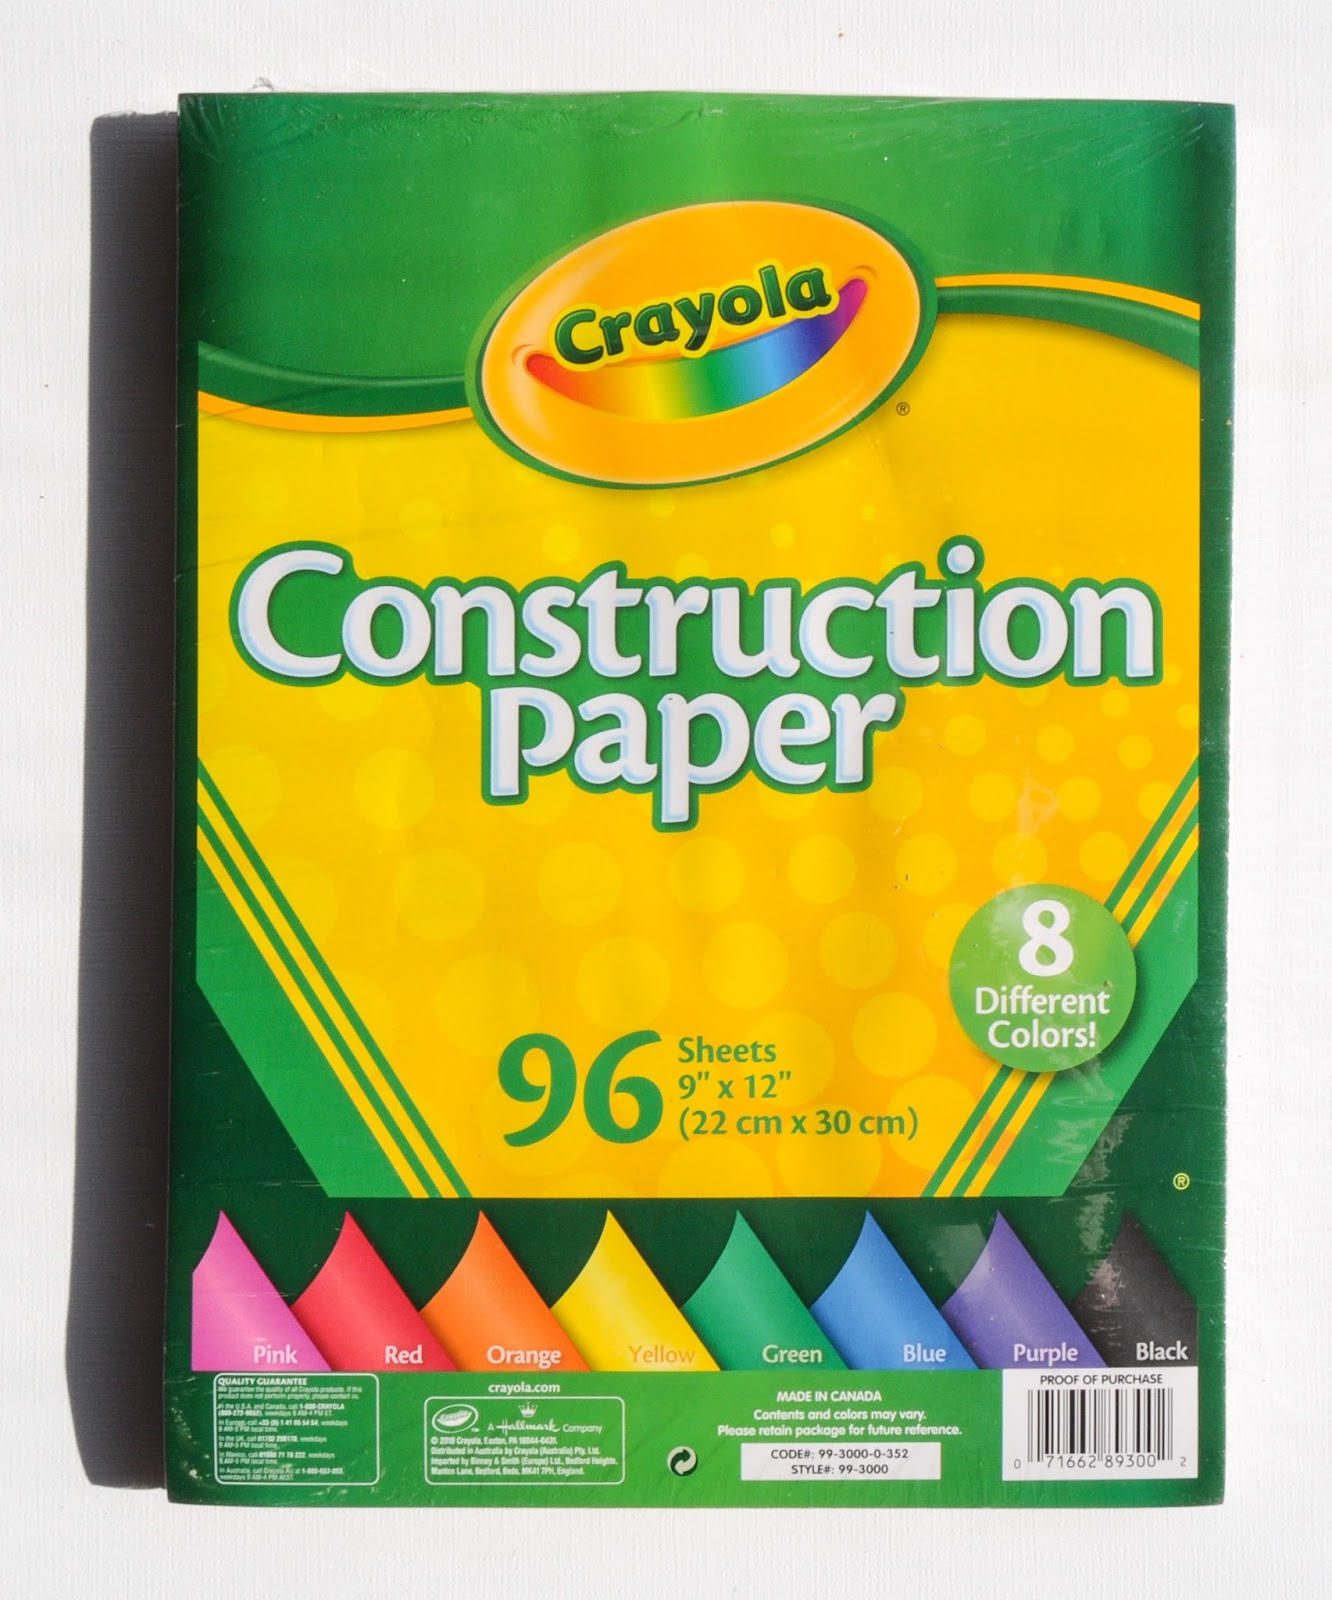 Crayola Construction Paper: What\'s Inside the Package | Jenny\'s ...